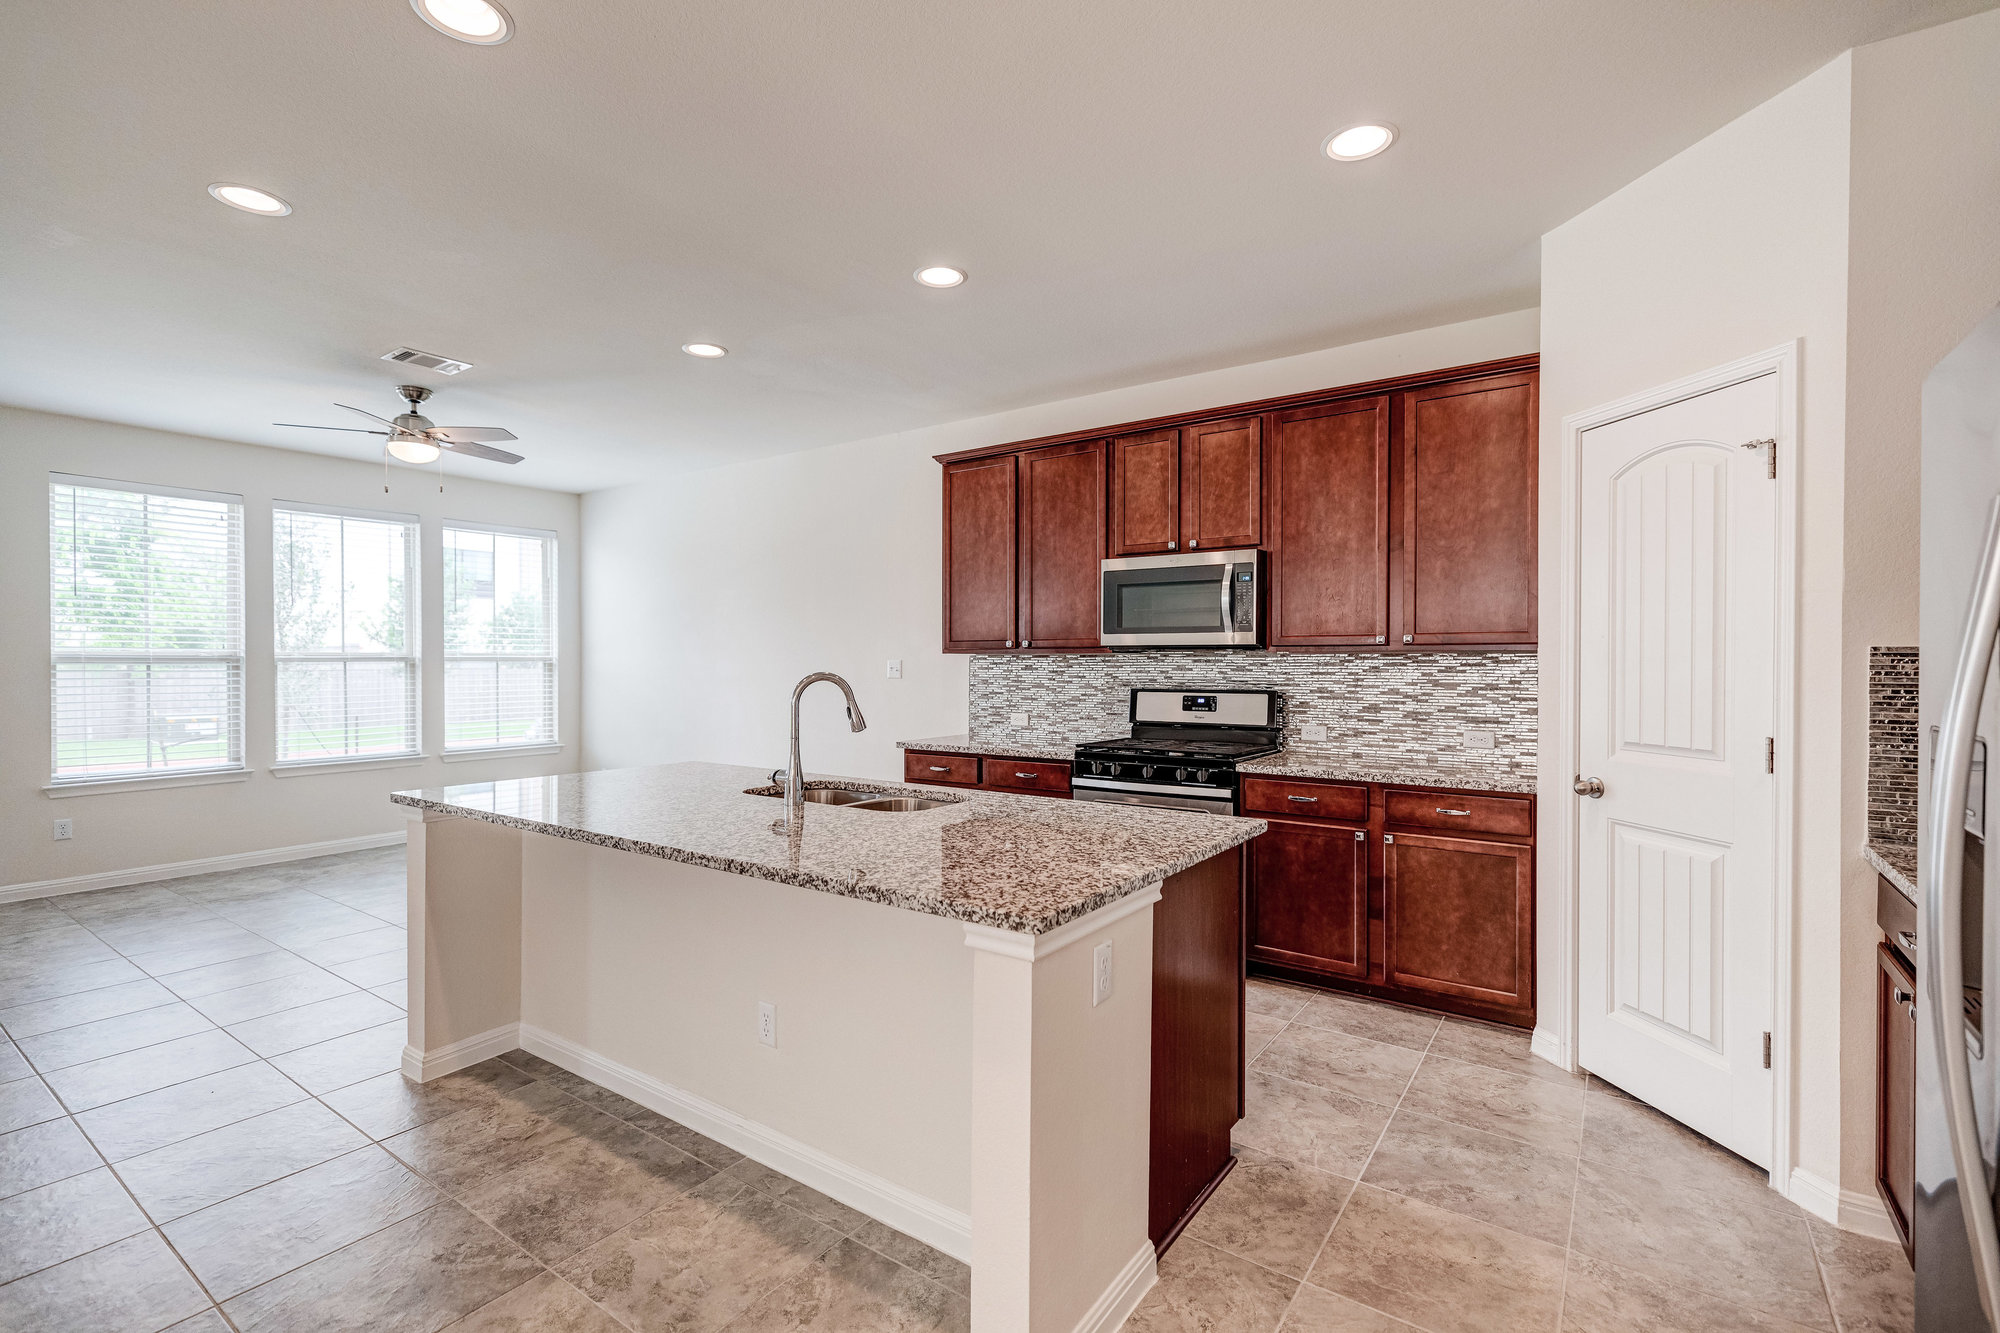 new home for sale in dripping springs